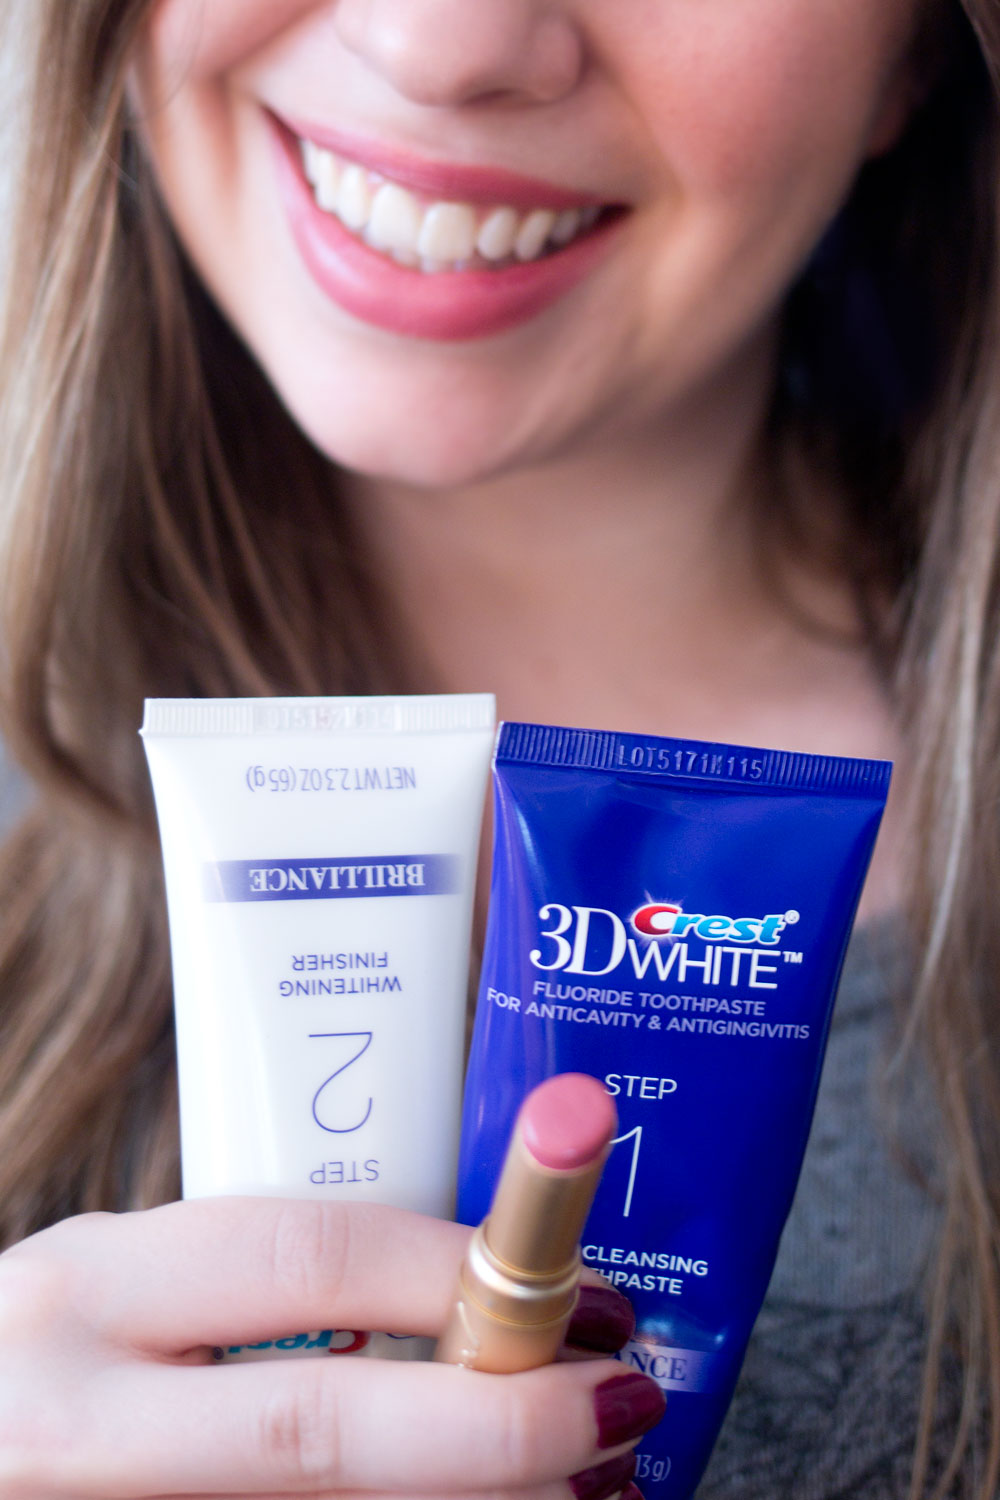 Crest 3D White Brillance Toothpaste System Review & Results // hellorigby seattle beauty blog